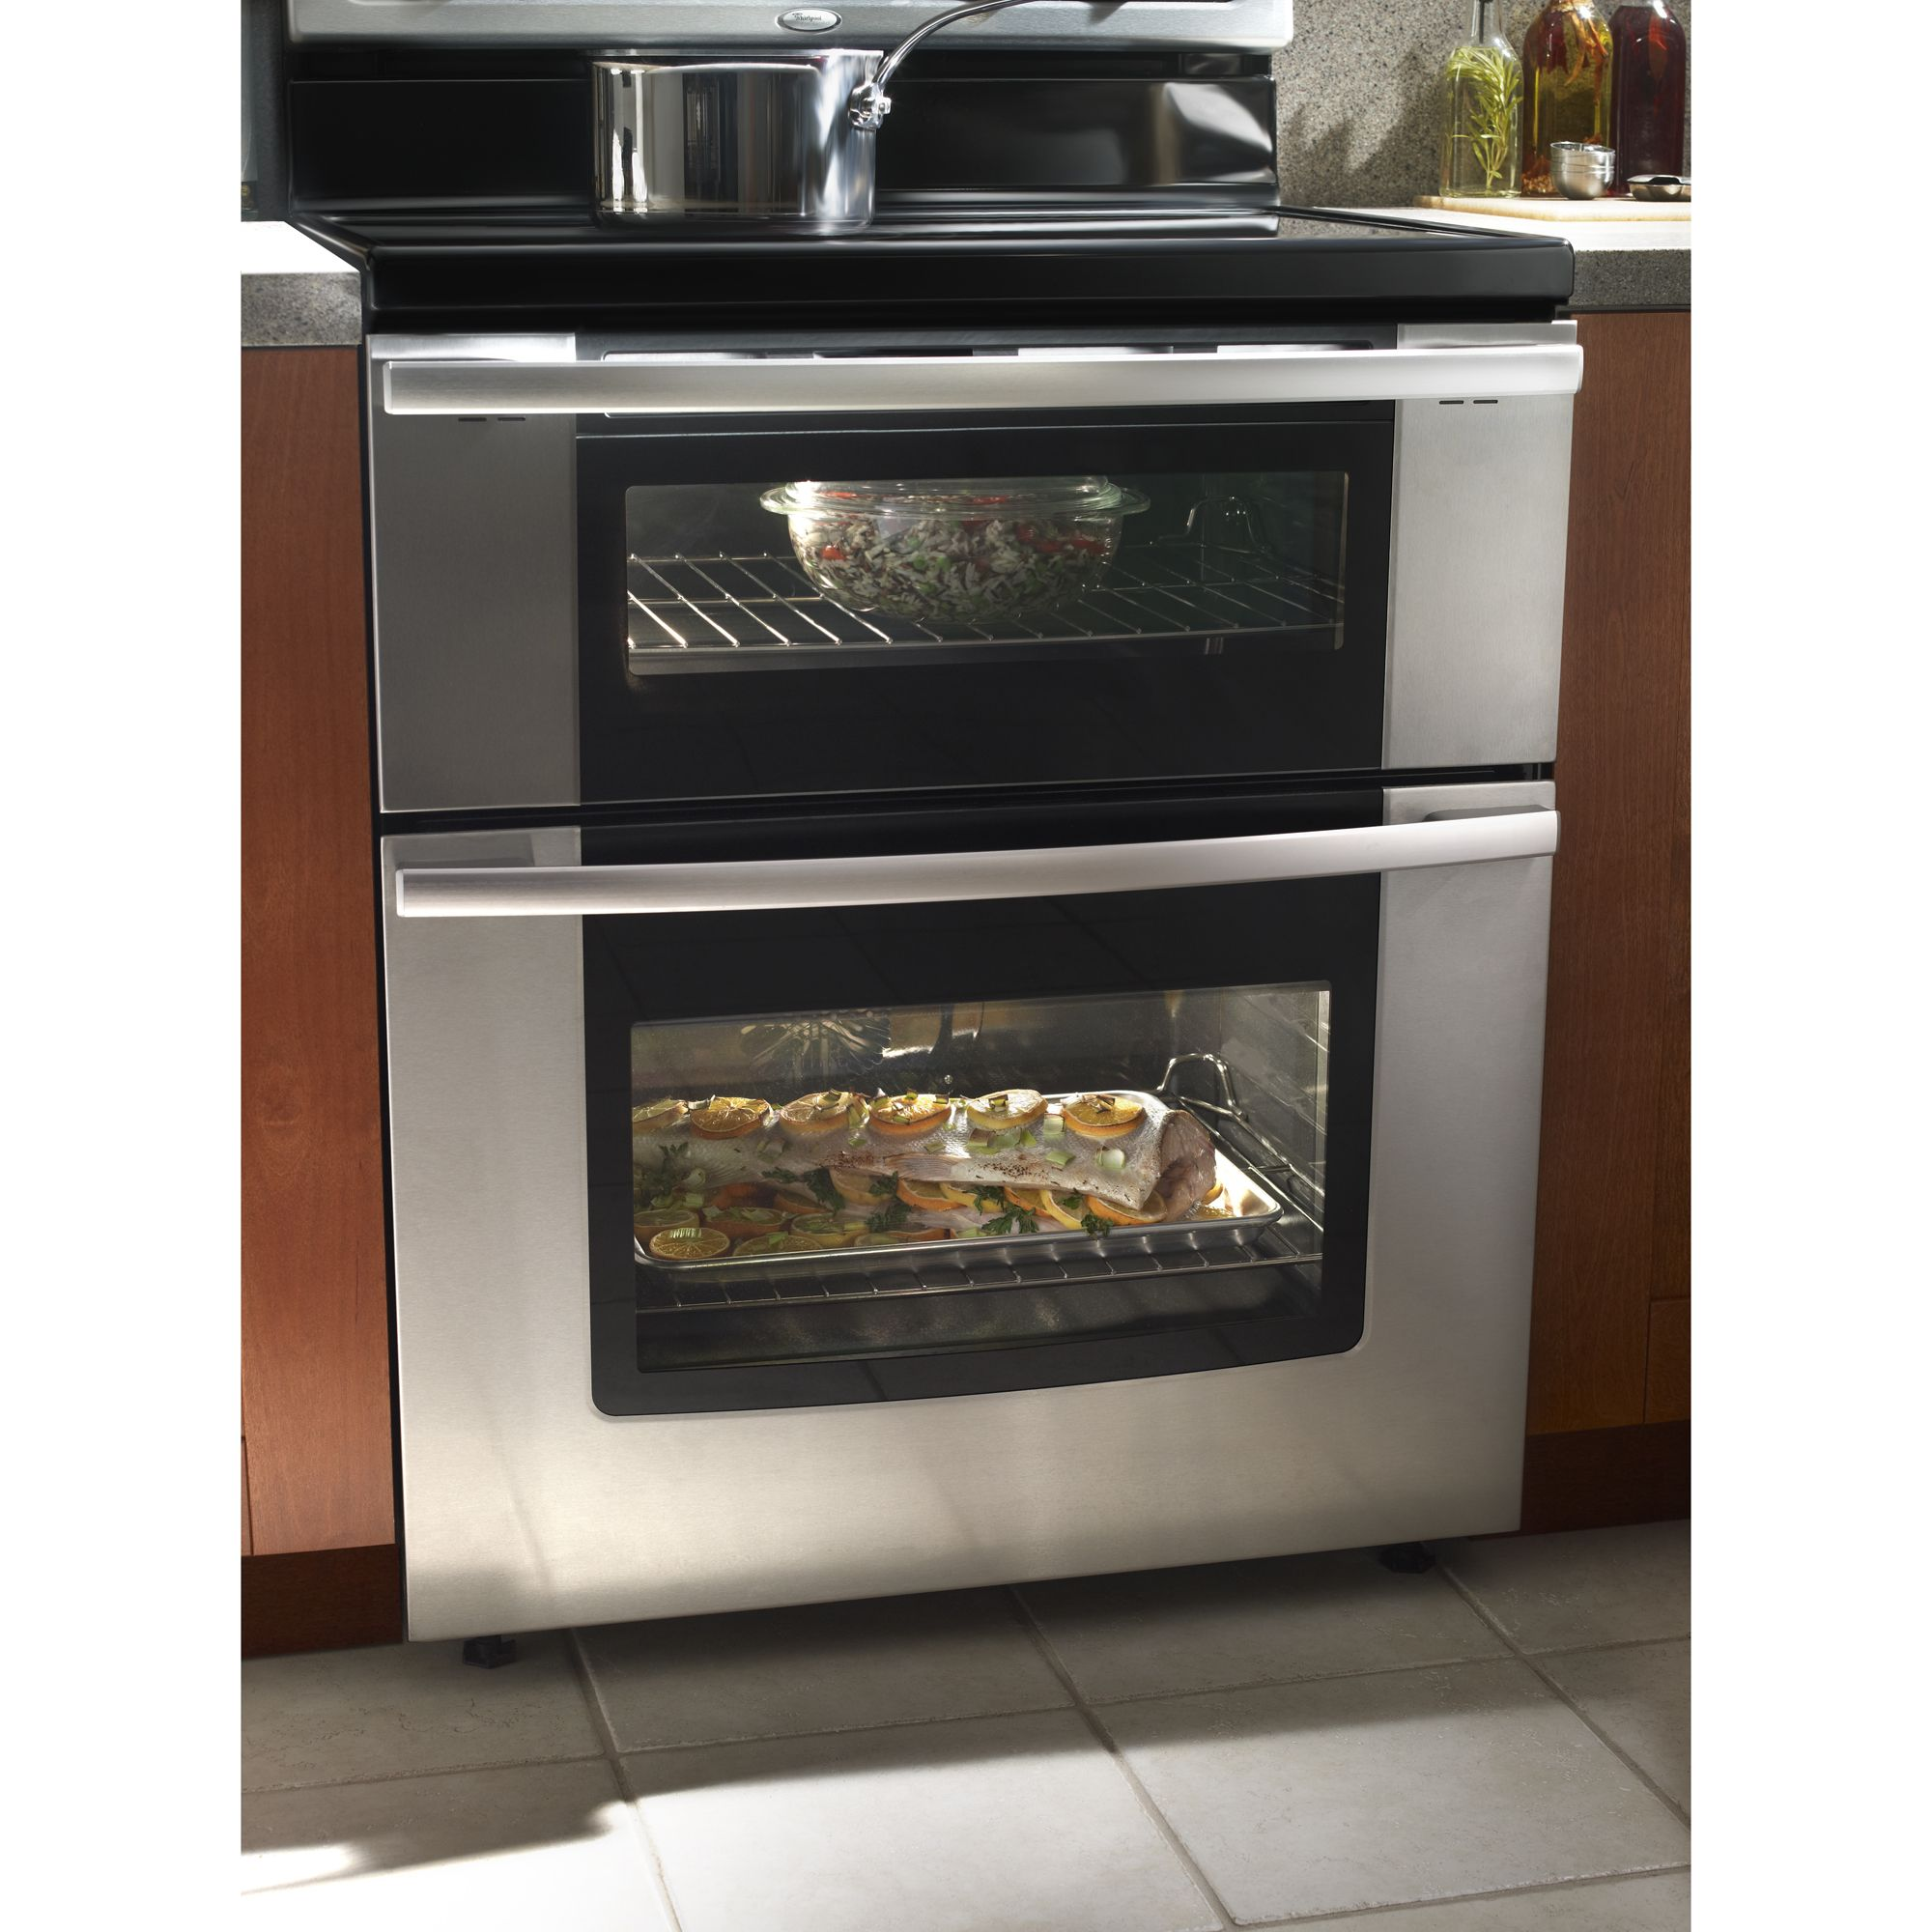 Whirlpool Gold 6.7 cu. ft. Double-Oven Electric Range